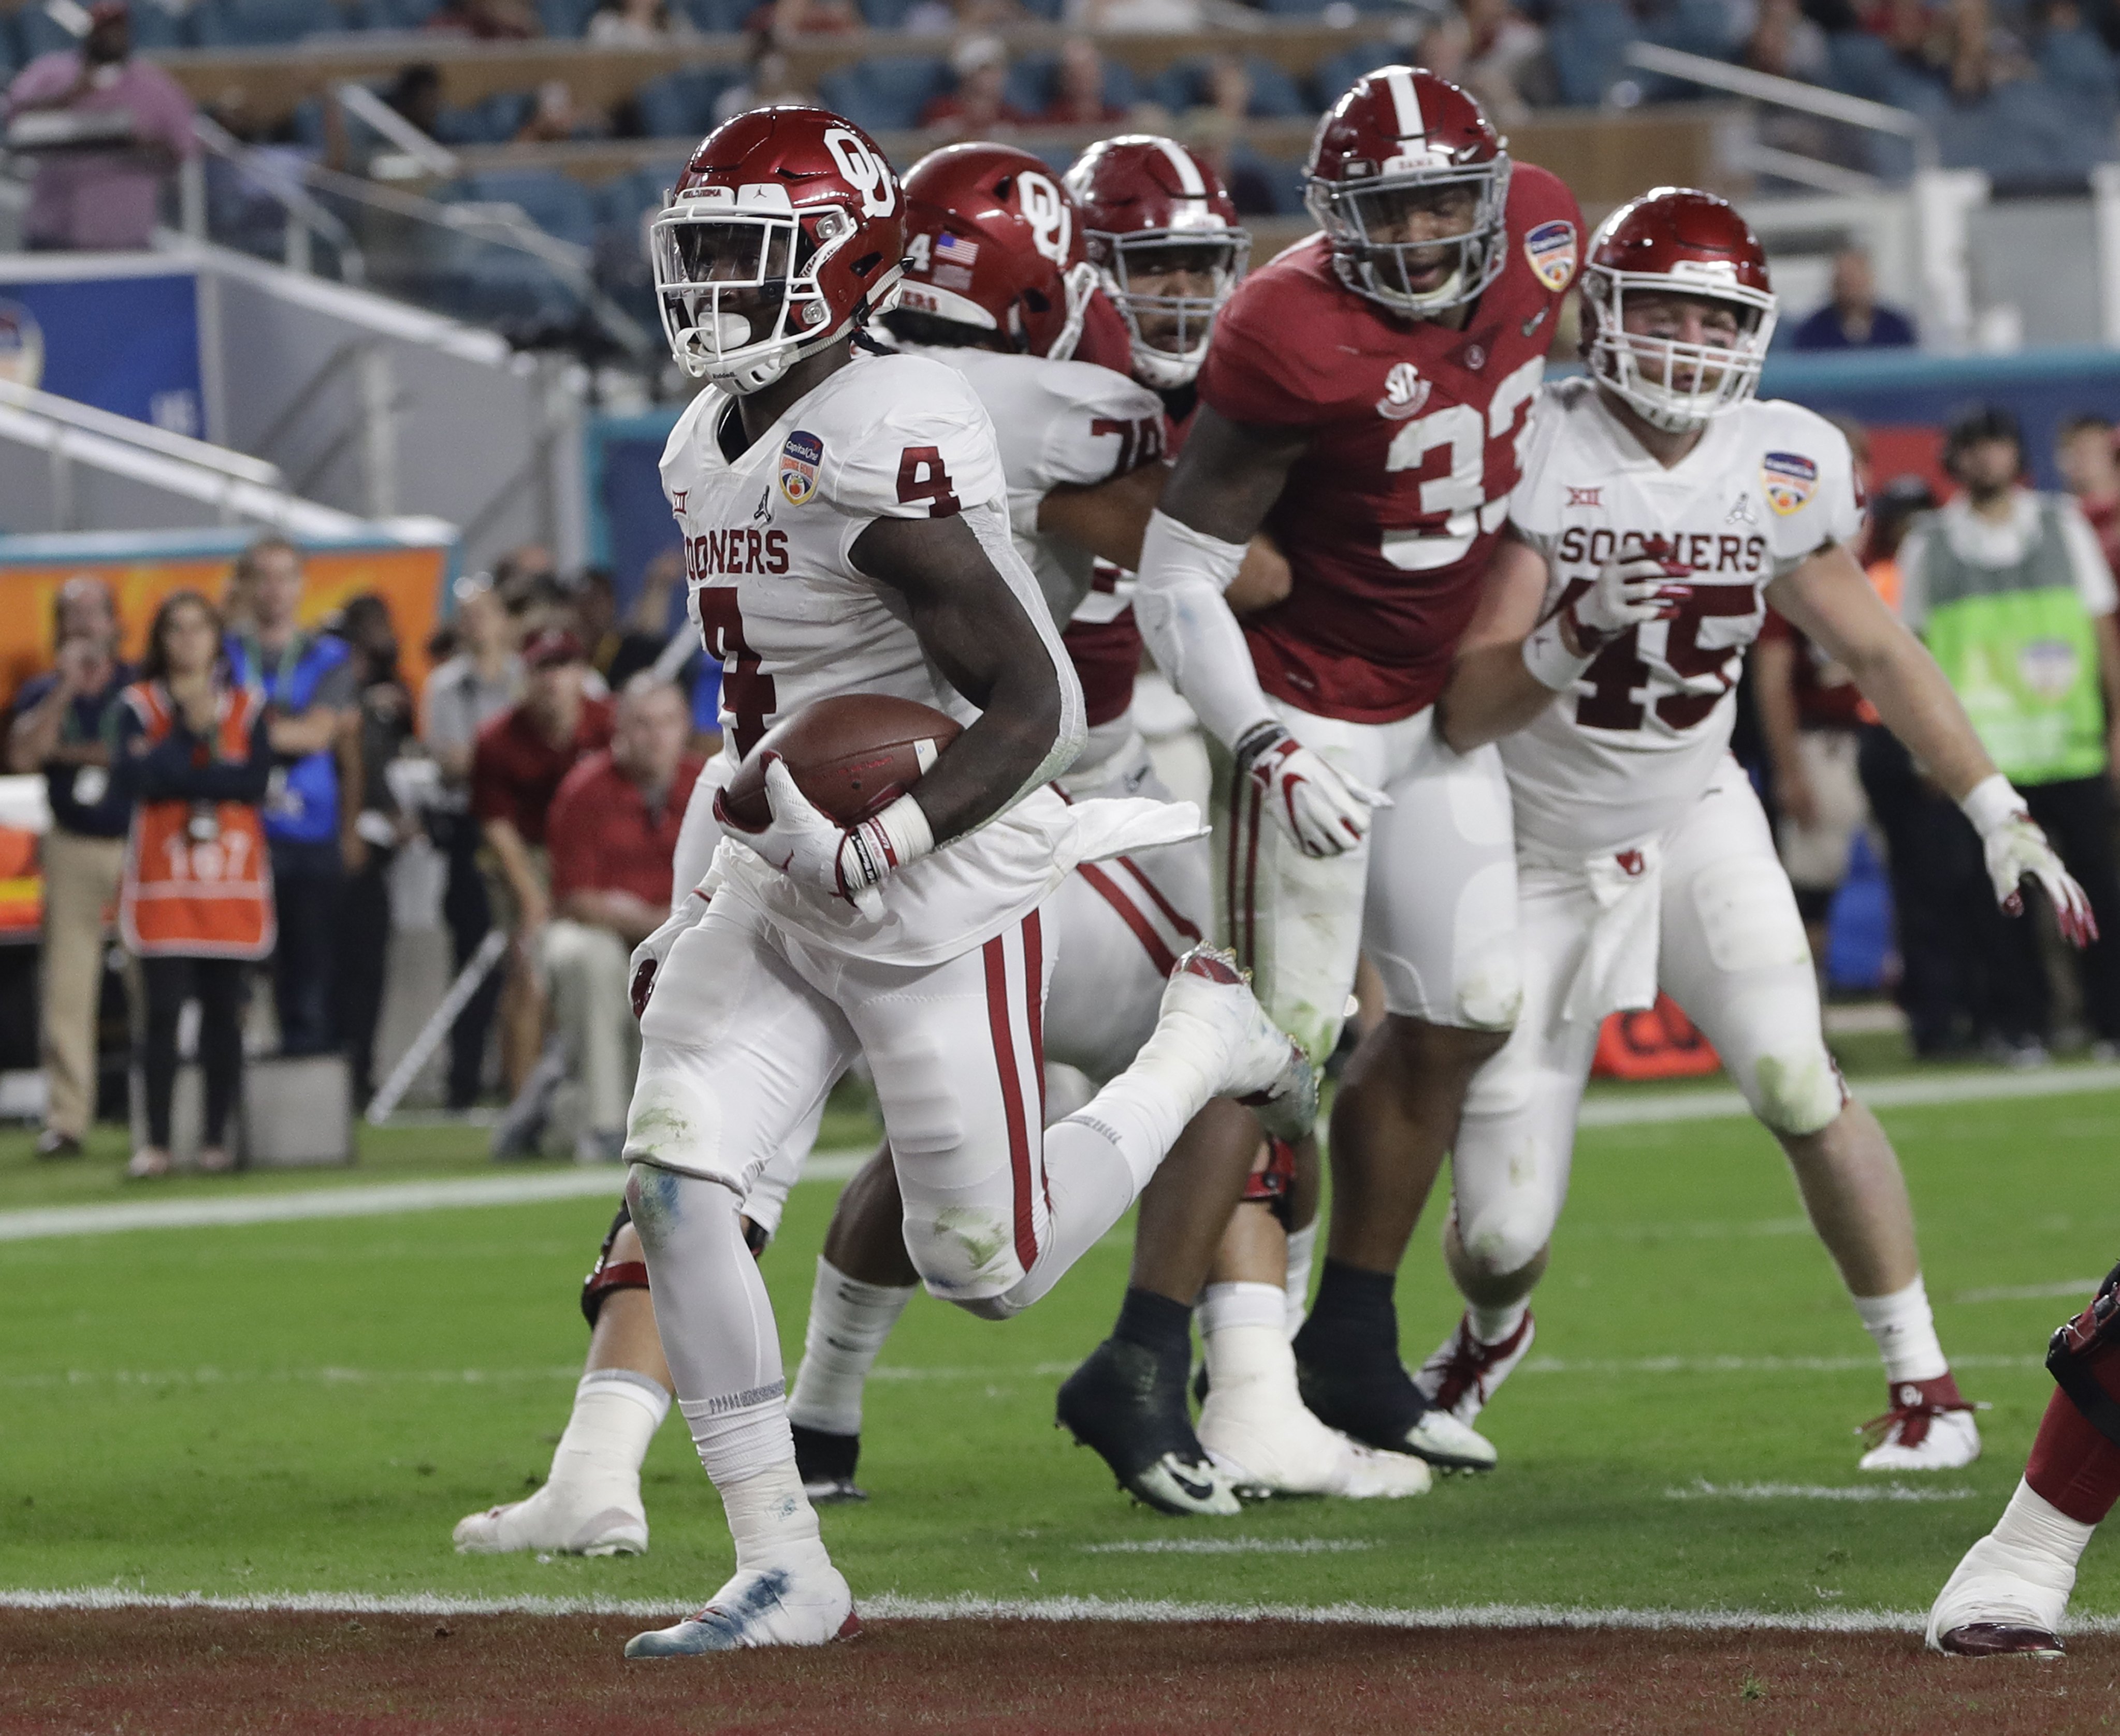 Oklahoma running back Trey Sermon (4) scores a touchdown, during the first half of the Orange Bowl NCAA college football game against Alabama, Saturday, Dec. 29, 2018, in Miami Gardens, Fla. (AP Photo/Lynne Sladky)